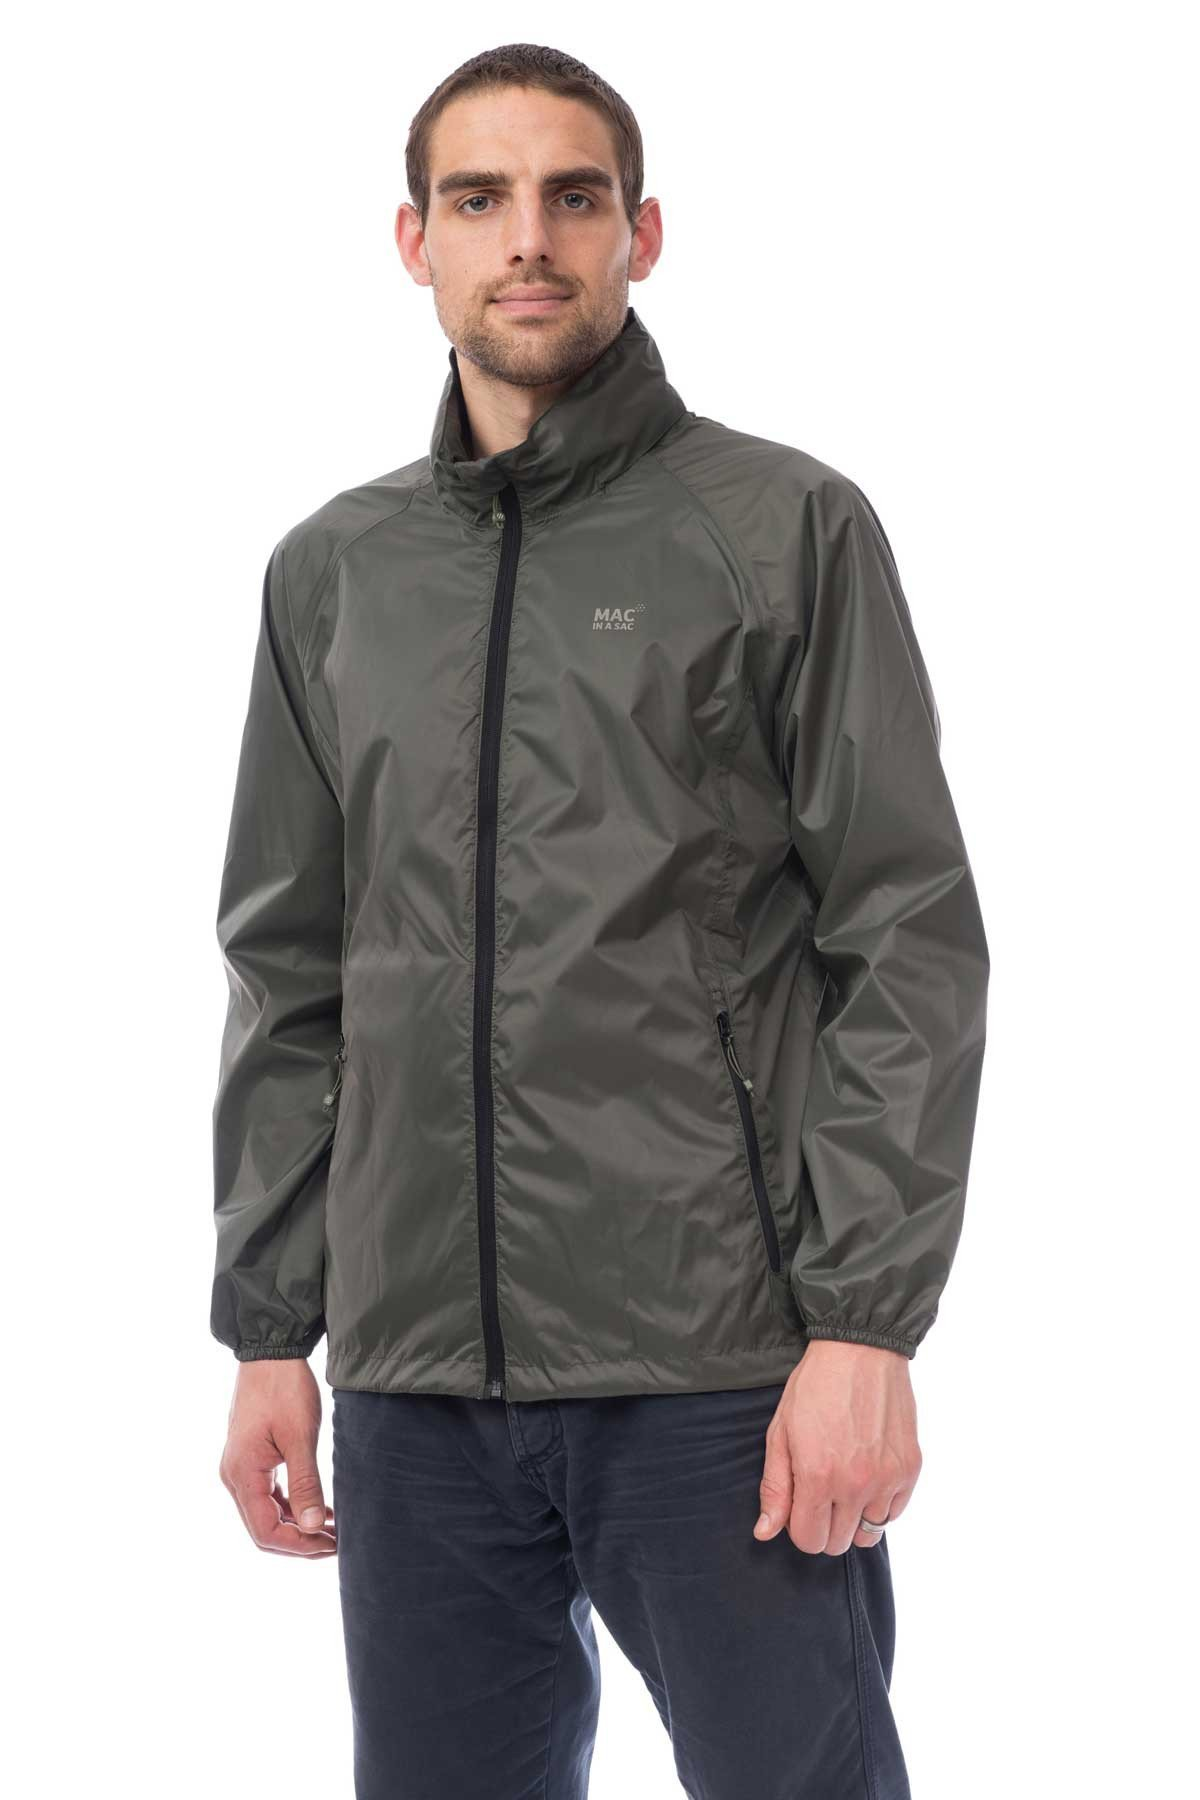 mac-in-a-sac-origin-waterproof-packaway-jacket-navy-front.jpeg